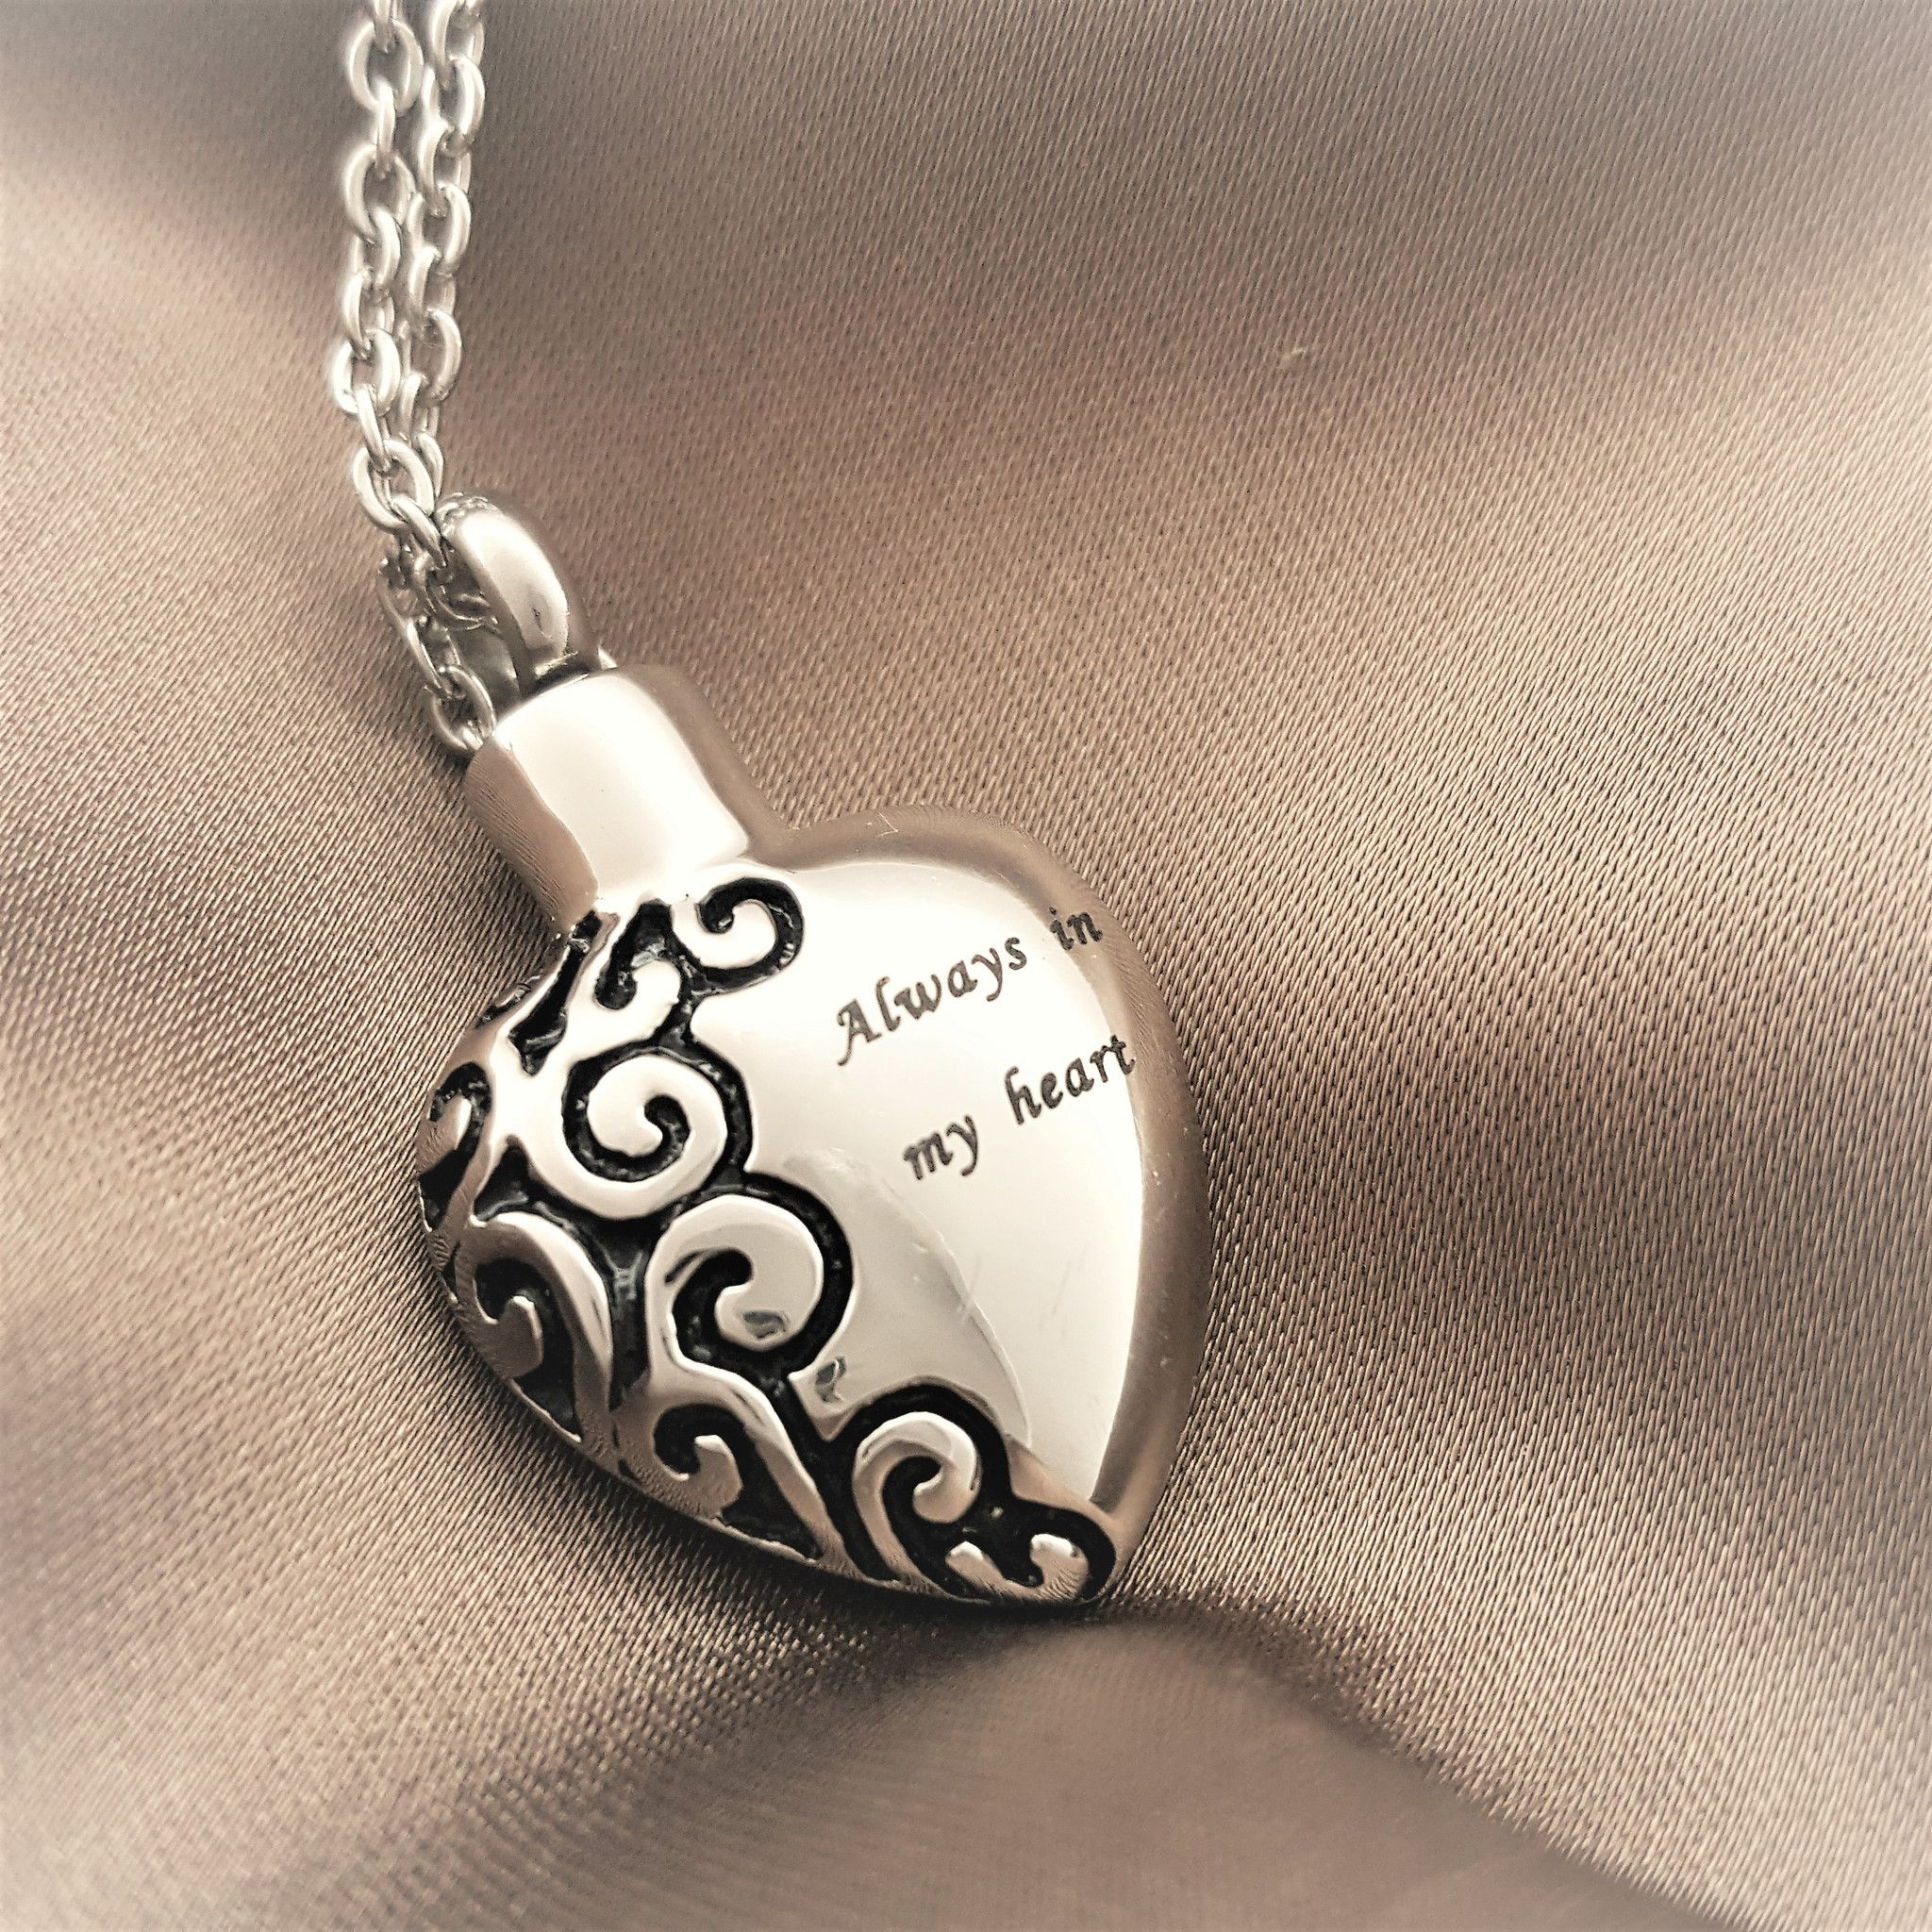 company wishlist heart lockets catholic cart in locket always memorial add my to the